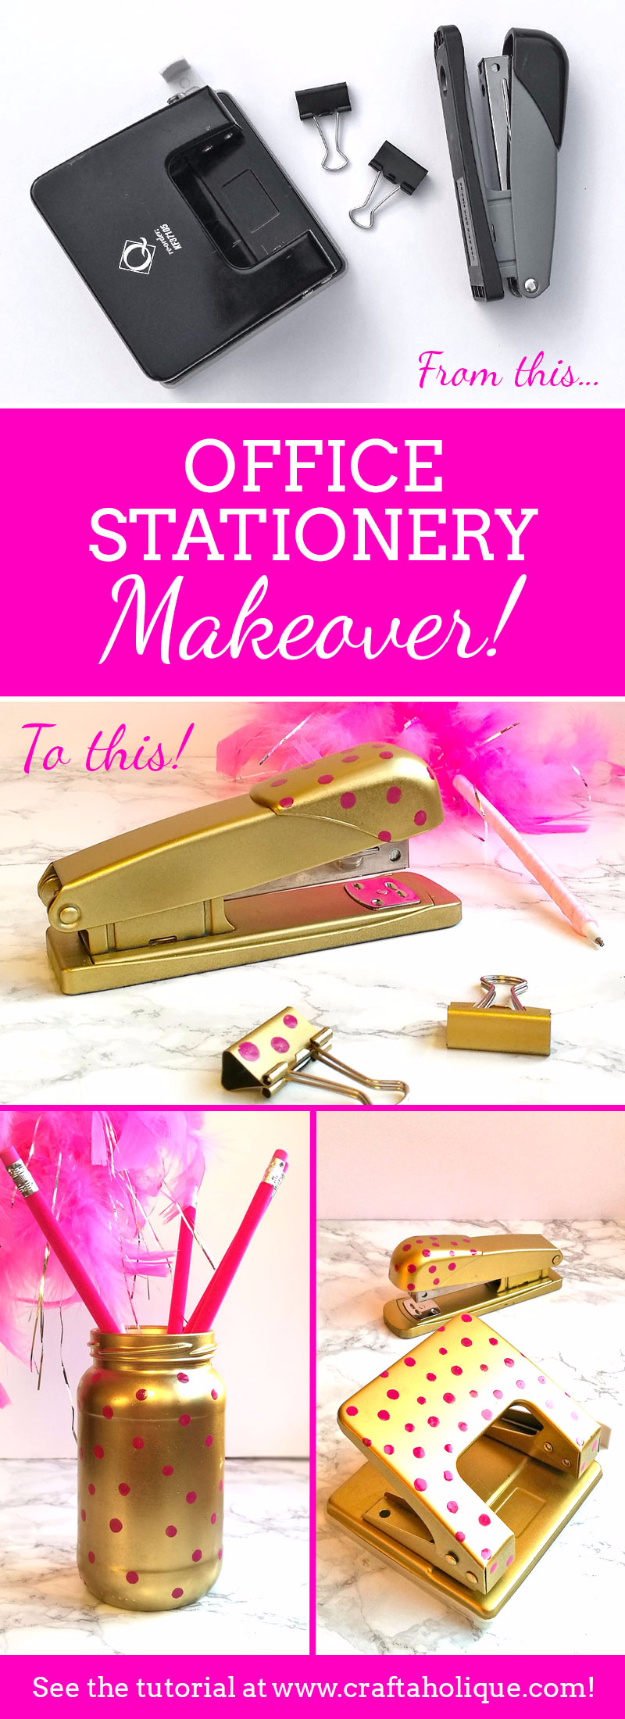 DIY Nail Polish Crafts - Office Stationery Makeover - Easy and Cheap Craft Ideas for Girls, Teens, Tweens and Adults | Fun and Cool DIY Projects You Can Make With Fingernail Polish - Do It Yourself Wire Flowers, Glue Gun Craft Projects and Jewelry Made From nailpolish - Water Marble Tutorials and How To With Step by Step Instructions s